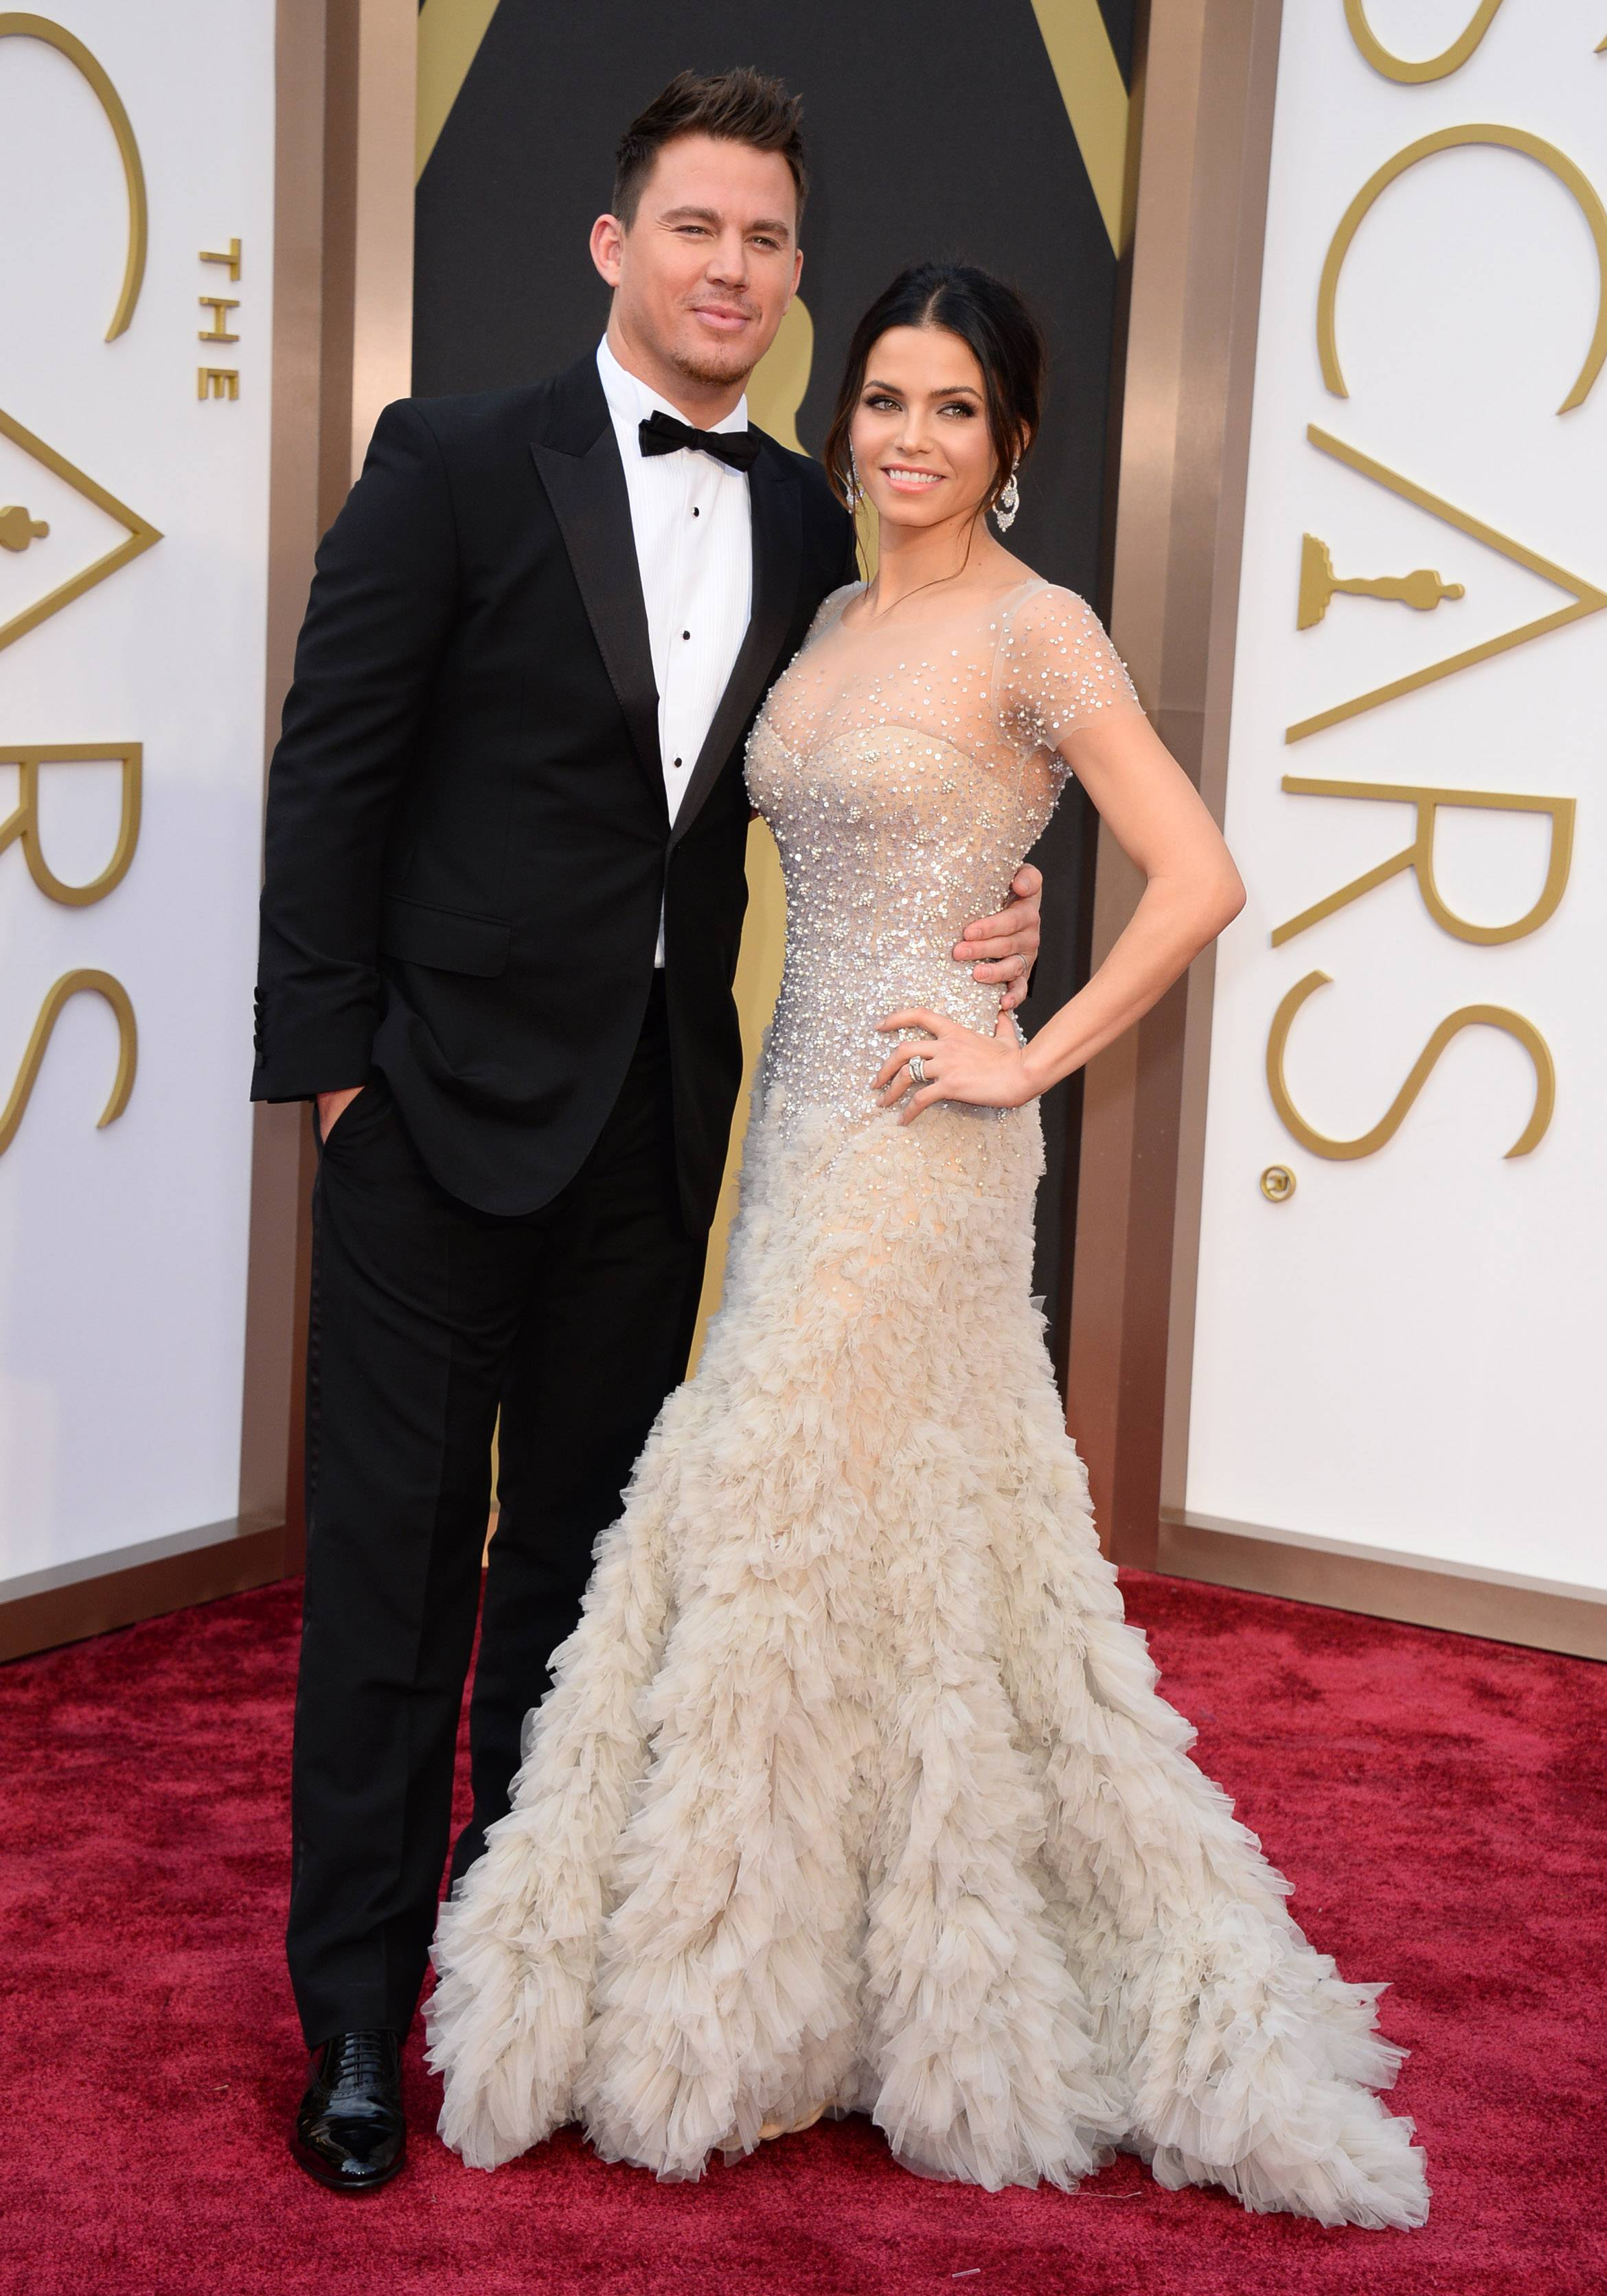 Actor Channing Tatum  and his wife, actress Jenna Dewan, arrive at the Oscars on Sunday.